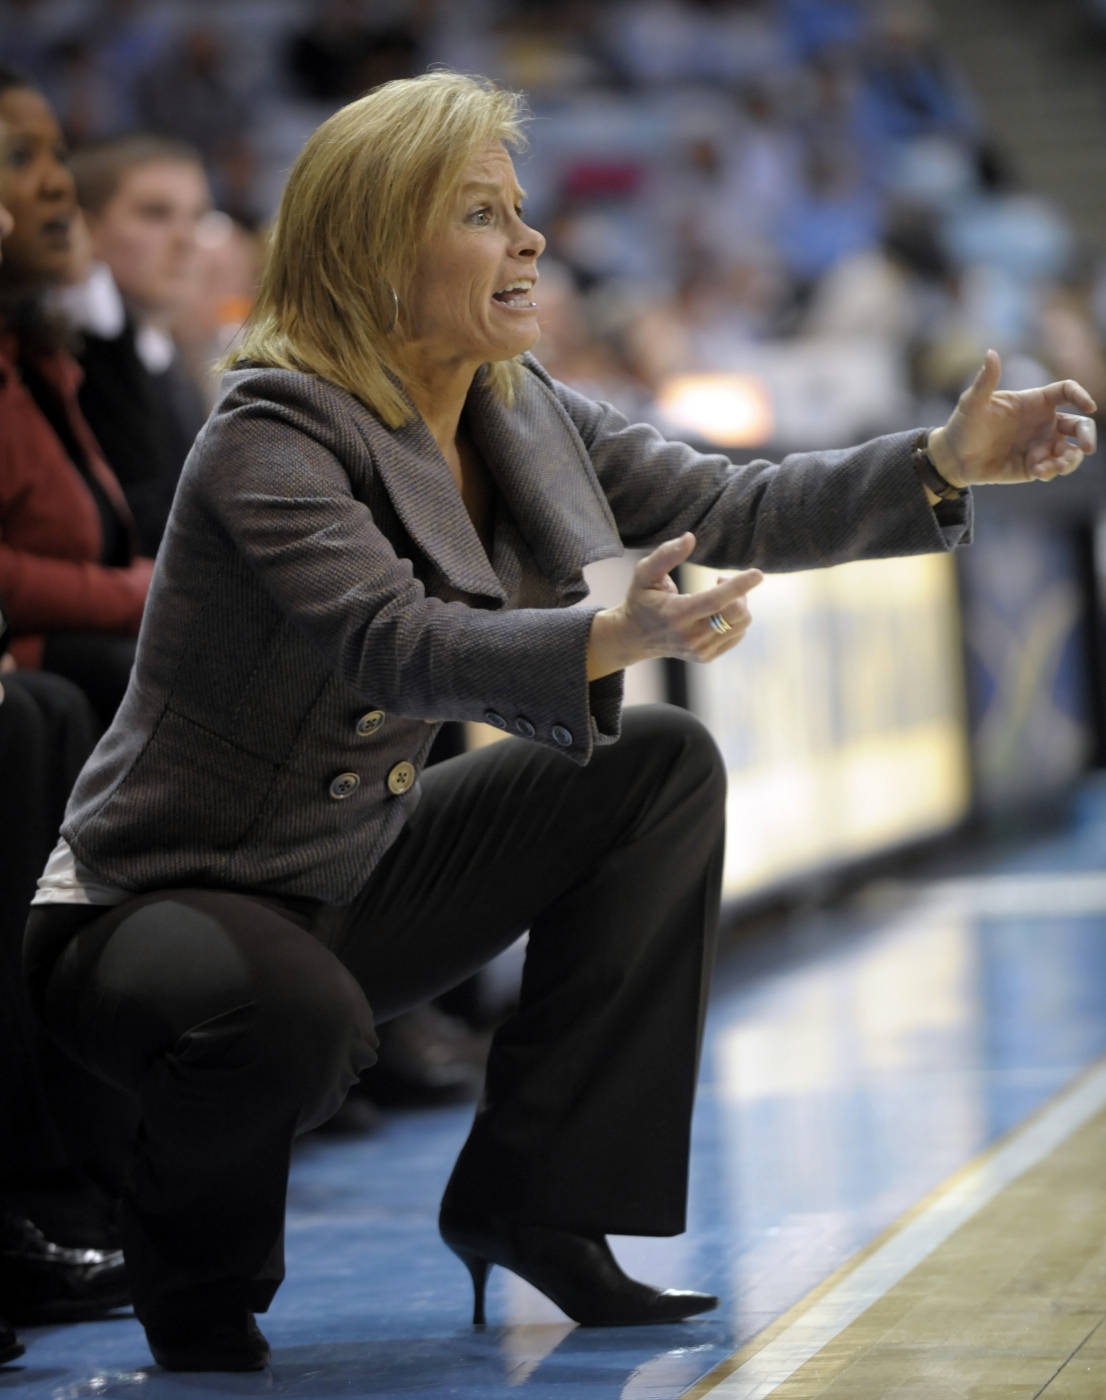 Florida State's head coach Sue Semrau yells to her team during the first half of an NCAA college basketball game against North Carolina in Durham, N.C., Monday, Feb. 1, 2010. Florida State won 83-73 over North Carolina. (AP Photo/Sara D. Davis)